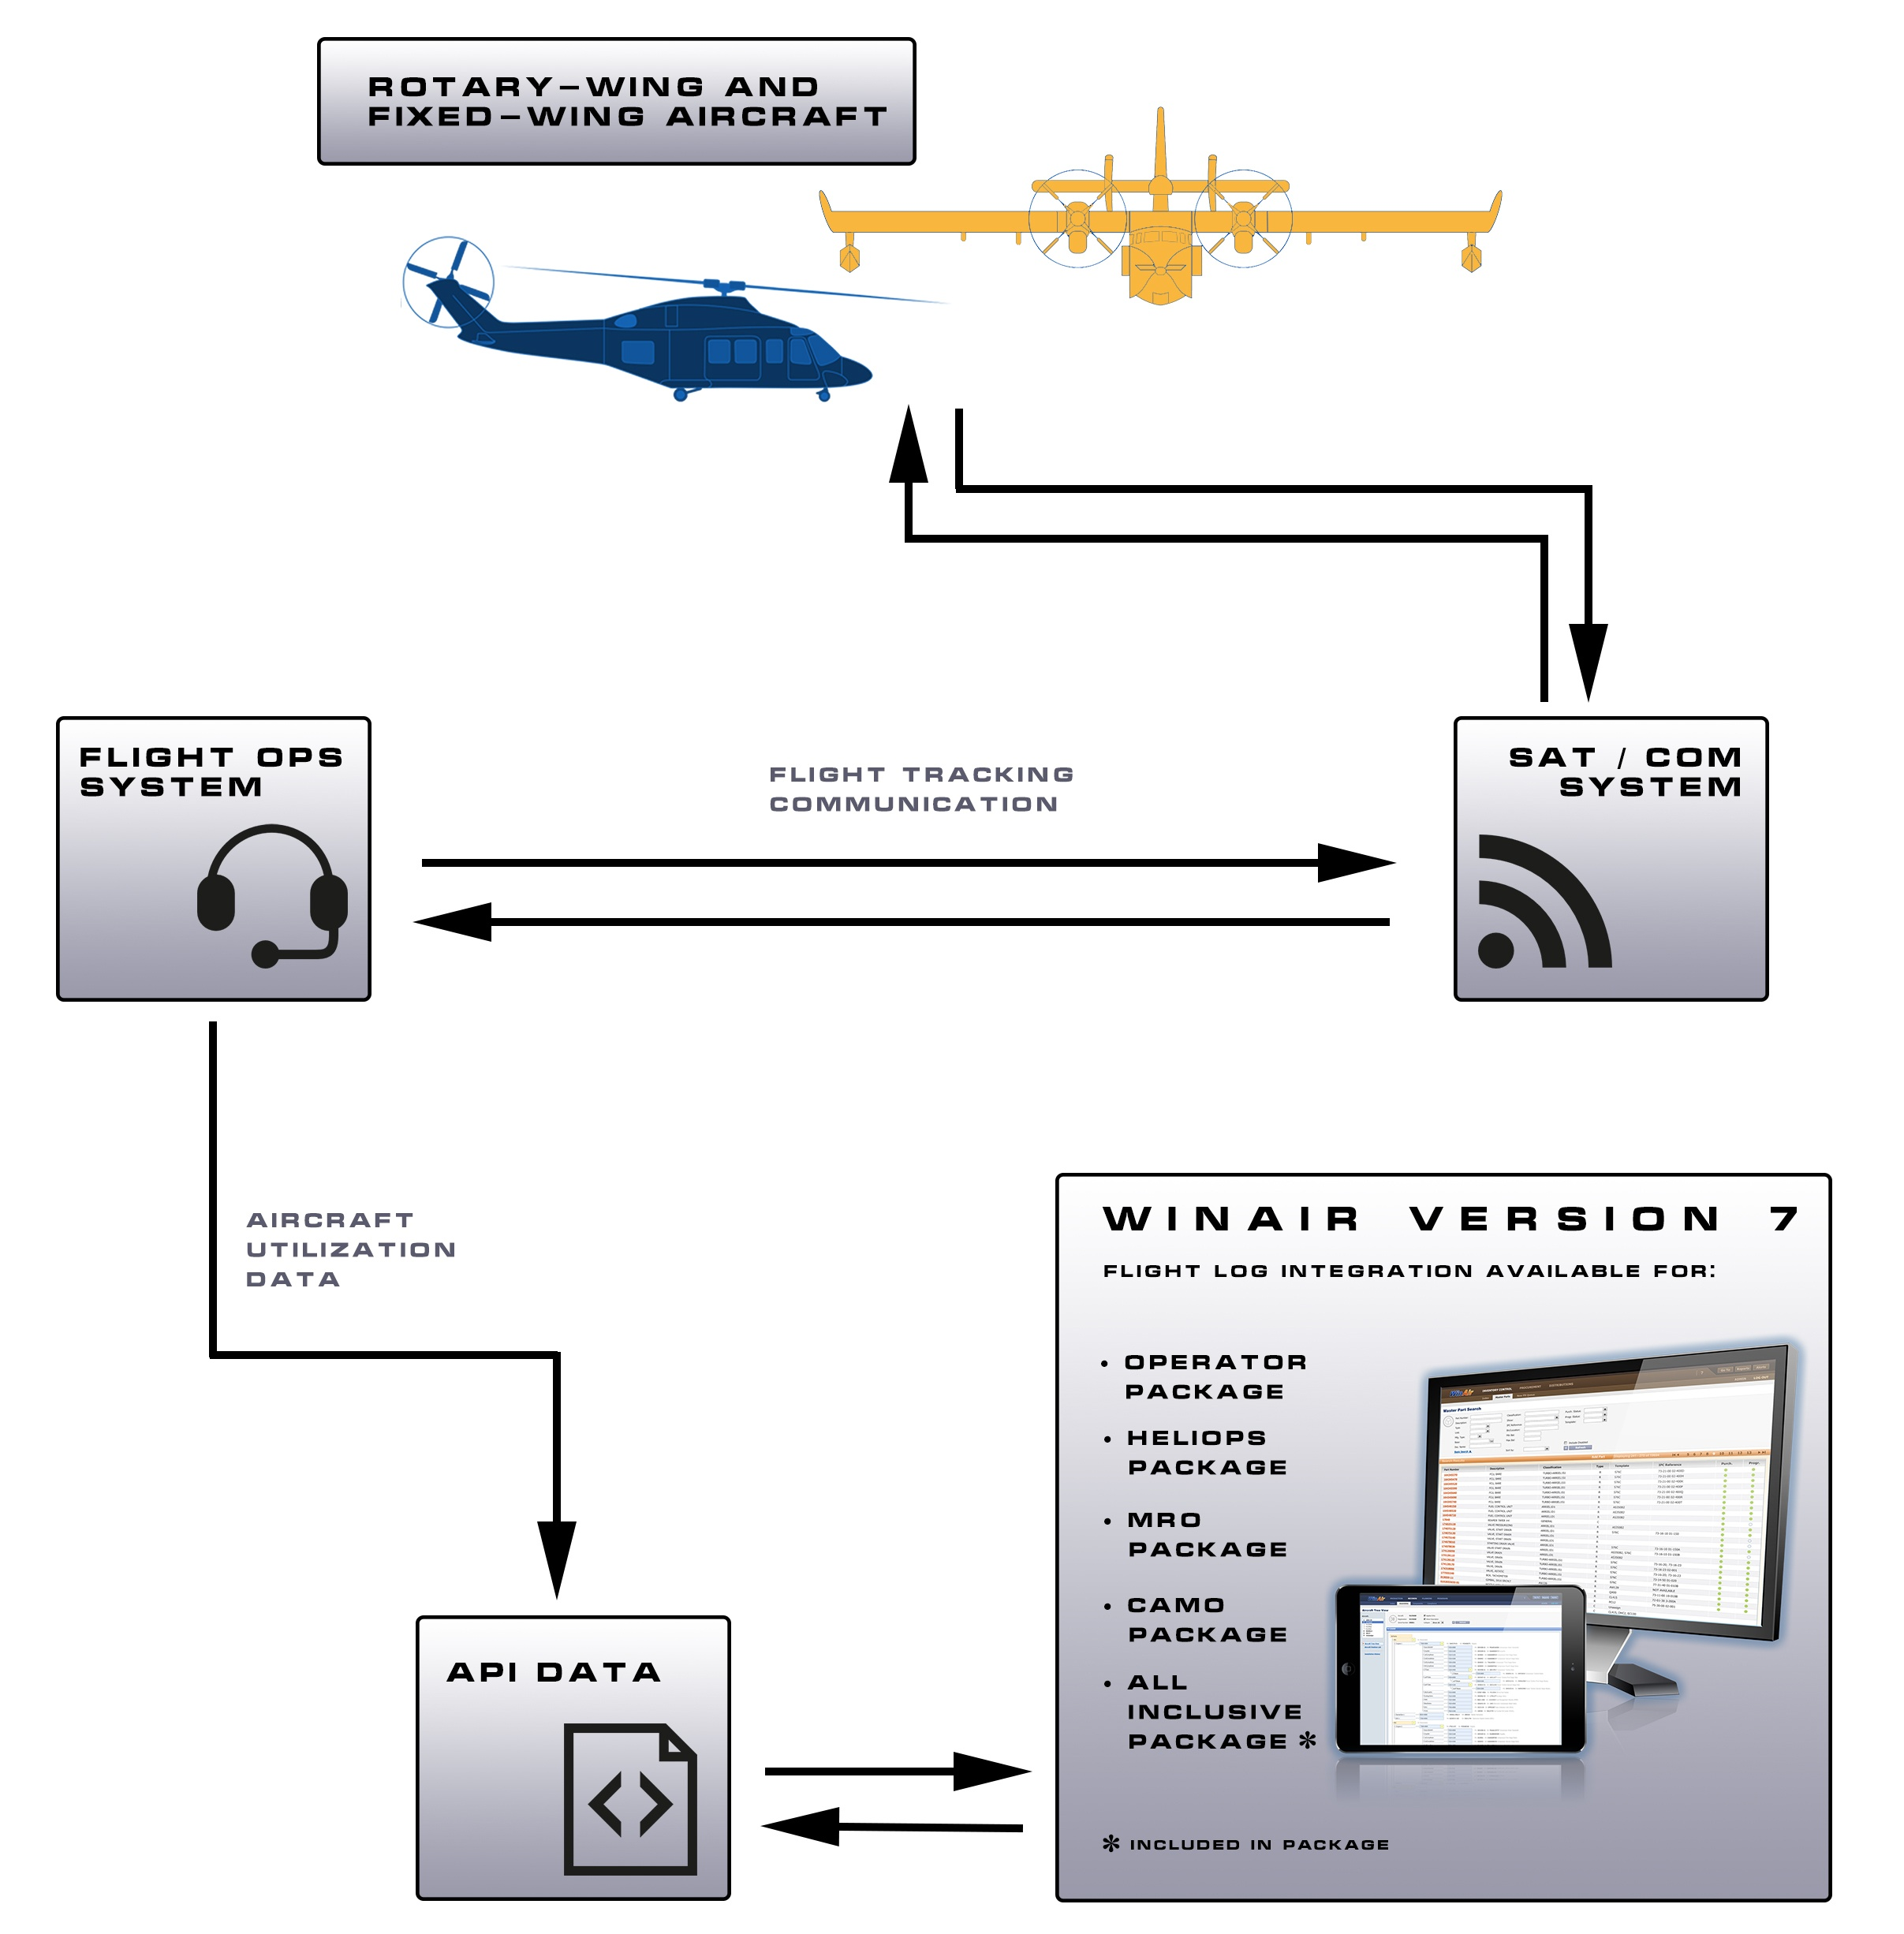 An overview of the workflow for WinAir's Flight Log Integration for WinAir Version 7